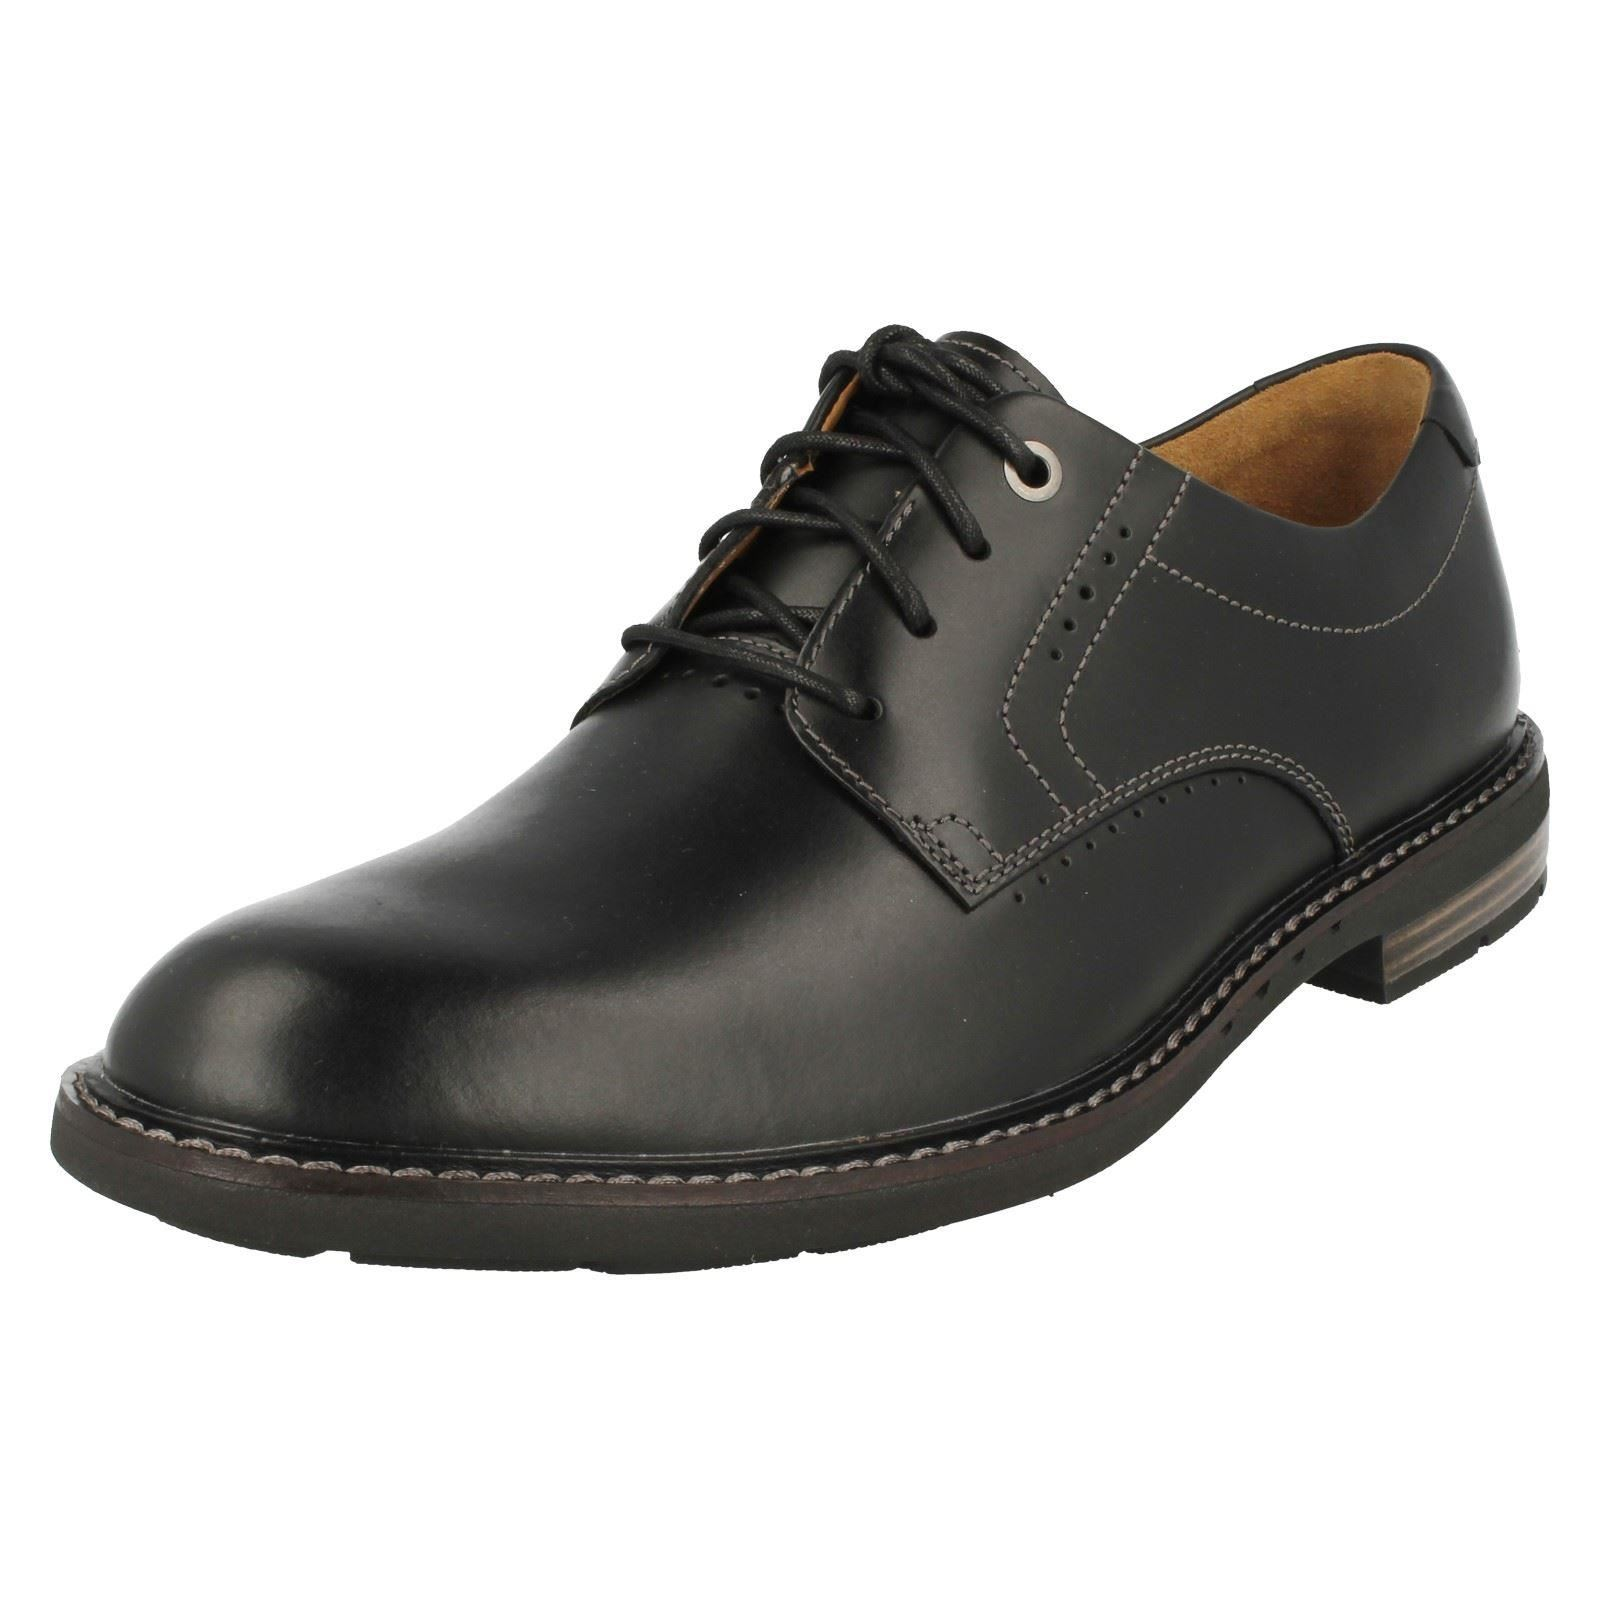 Mens Clarks Formal Lace Up Shoes Unelott Plain